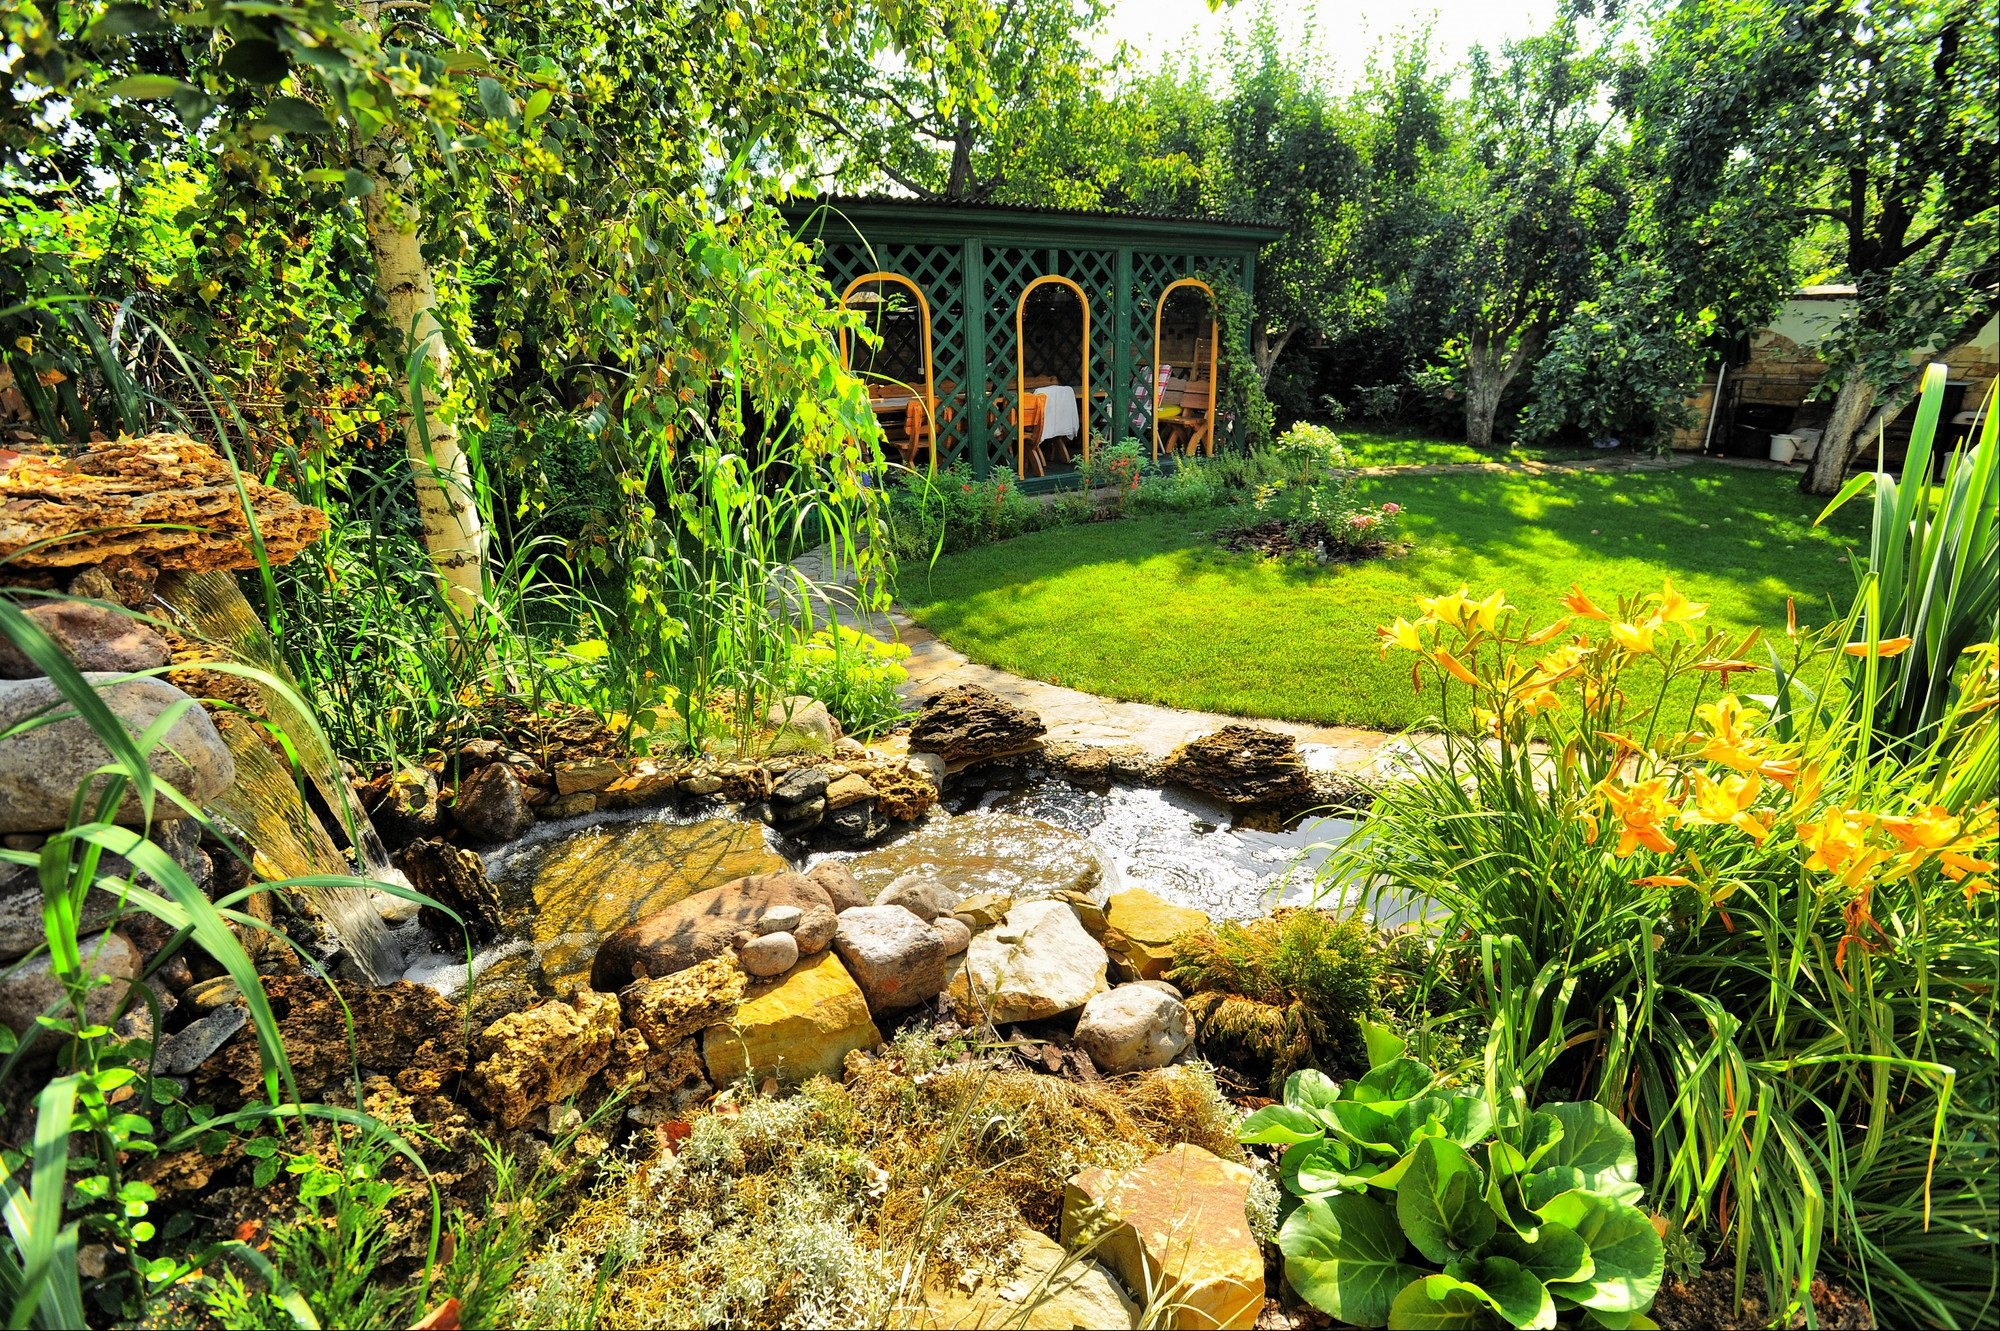 A green Summer house in a garden with curved lawn and water feature